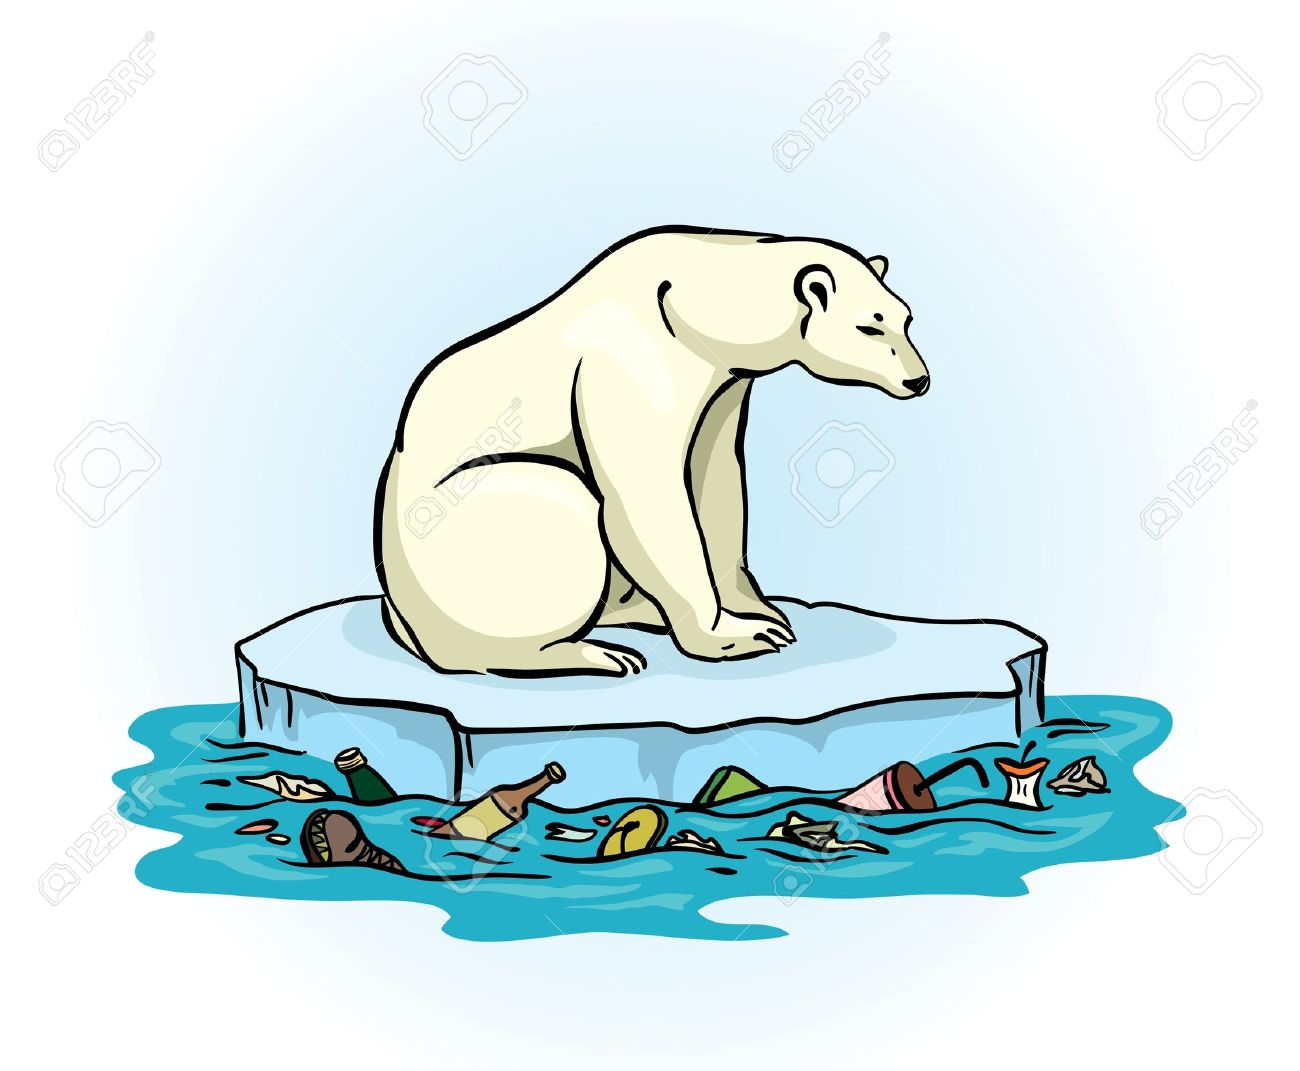 Soil Bag Clipart soil pollution Polar bear